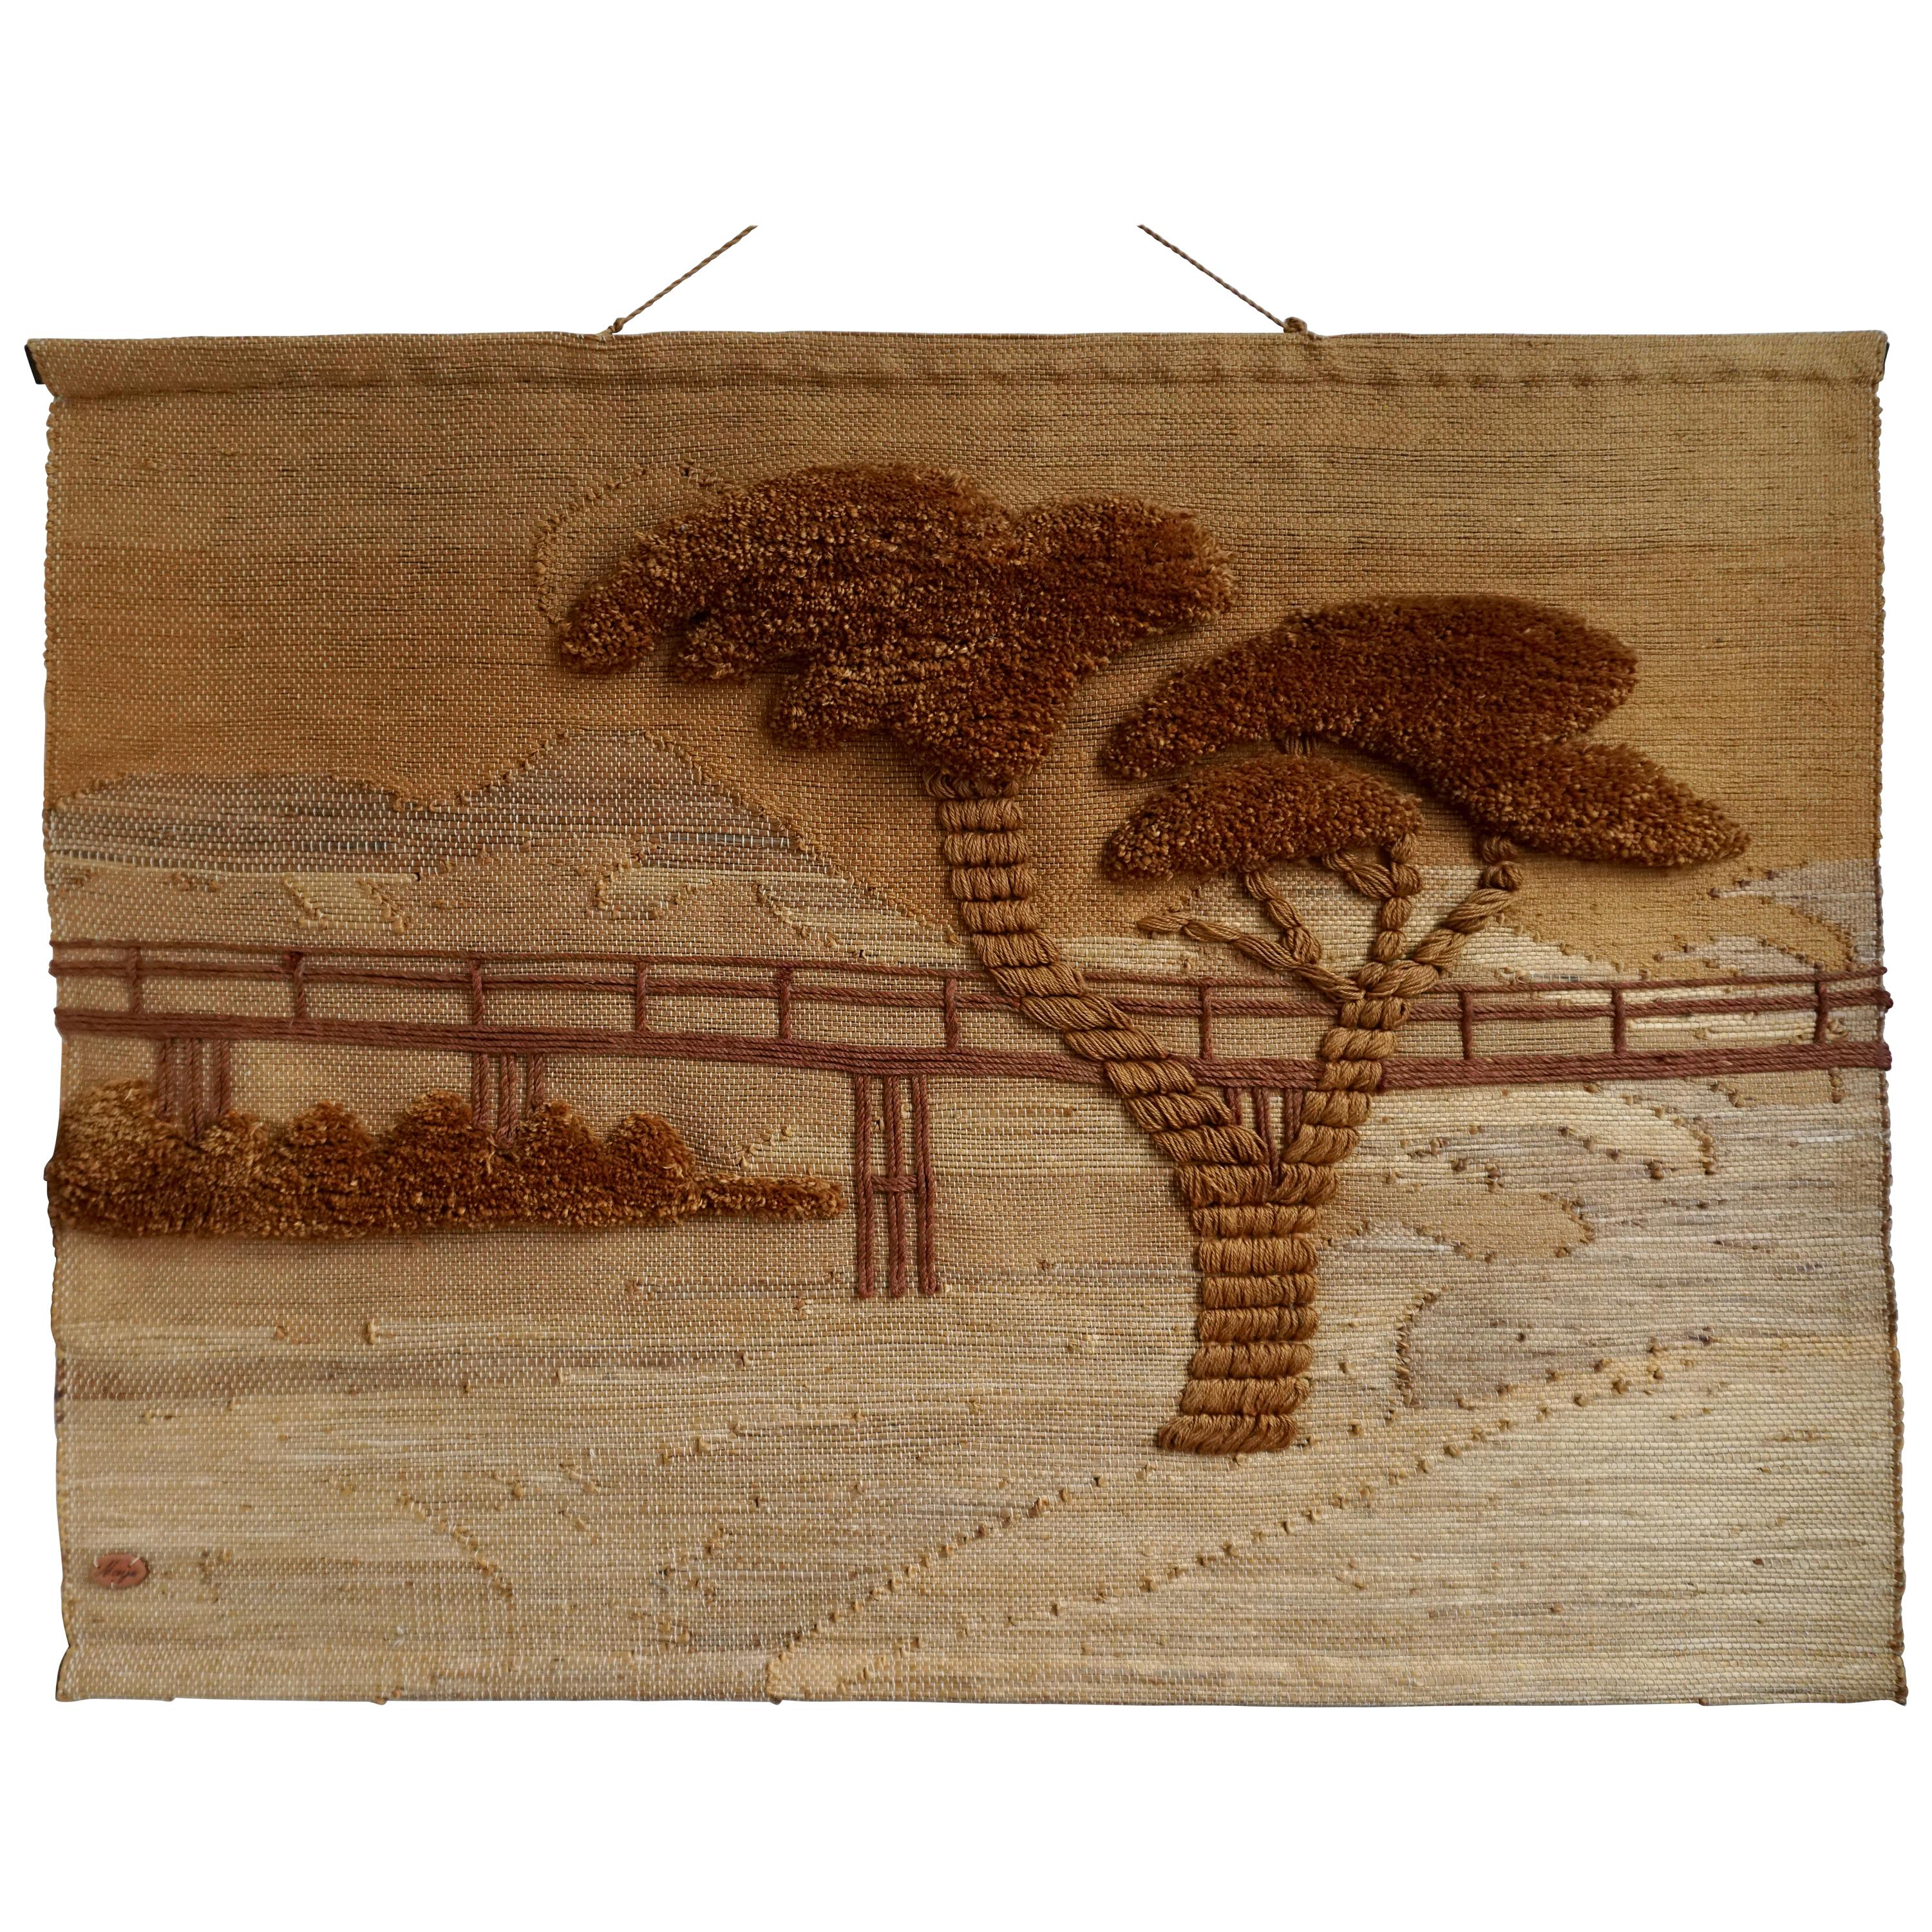 Maija Tapestry Wall Art in Rope